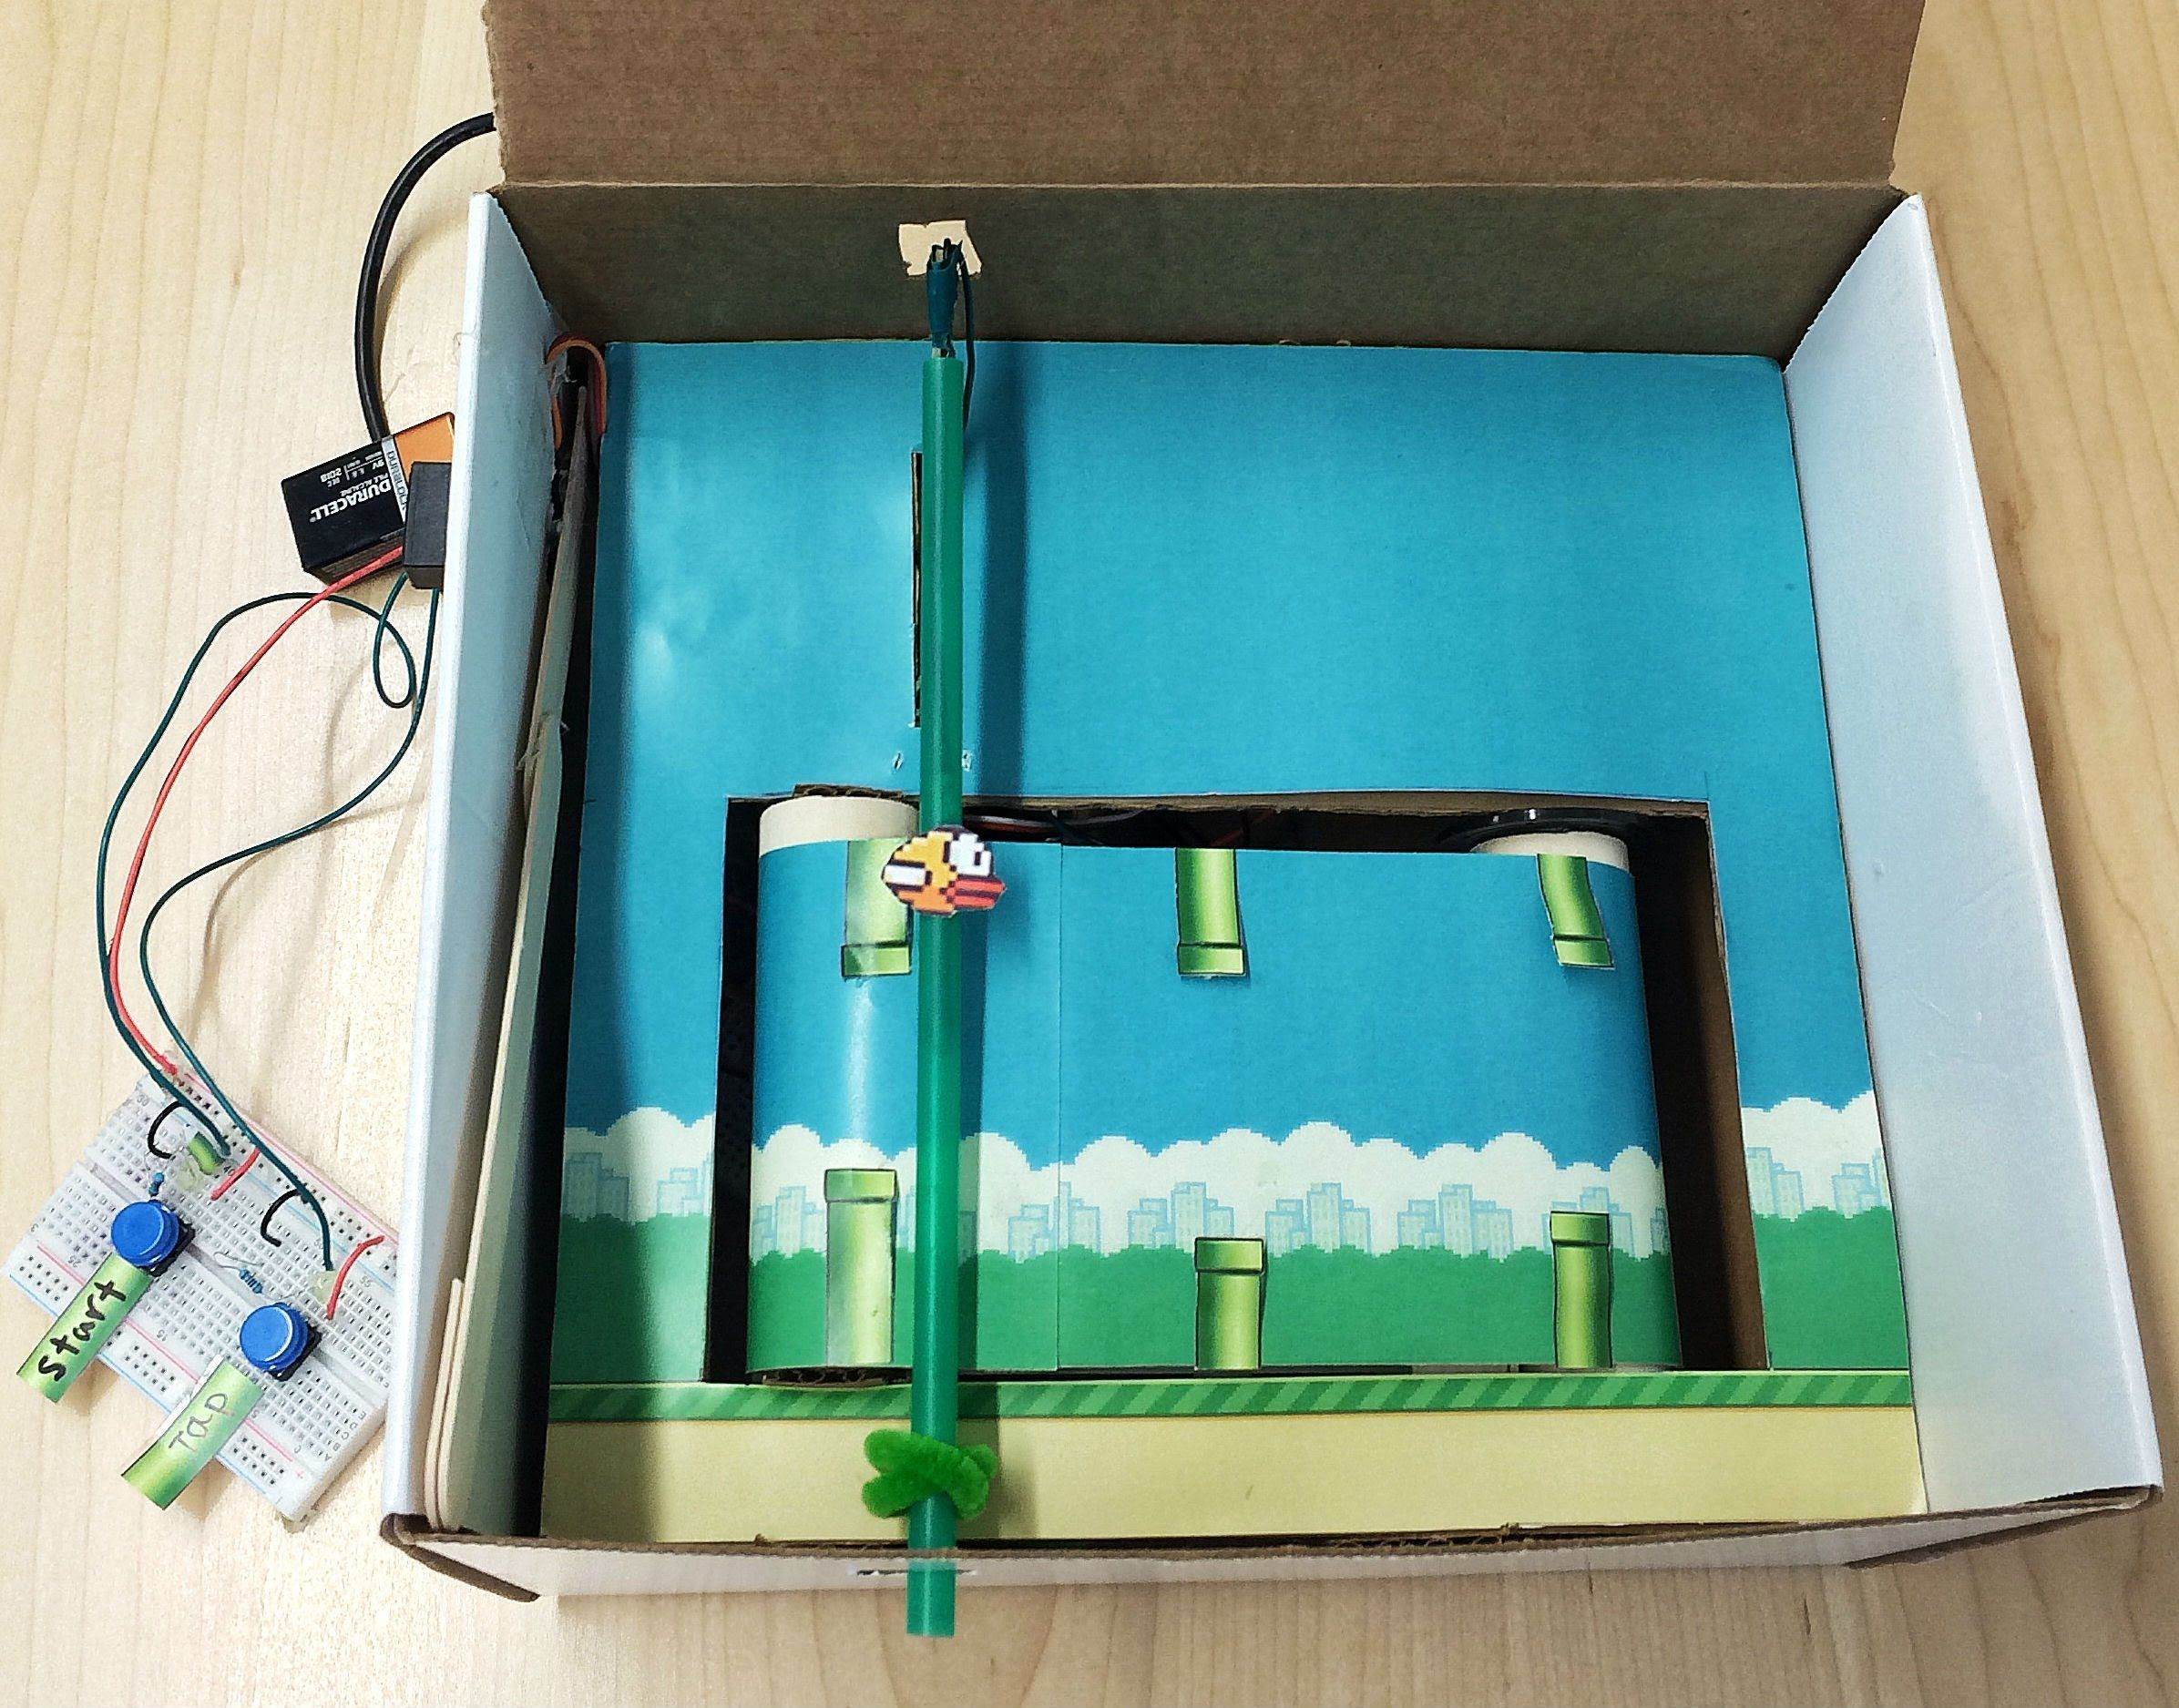 Flappy bird in a box a hacked together physical version